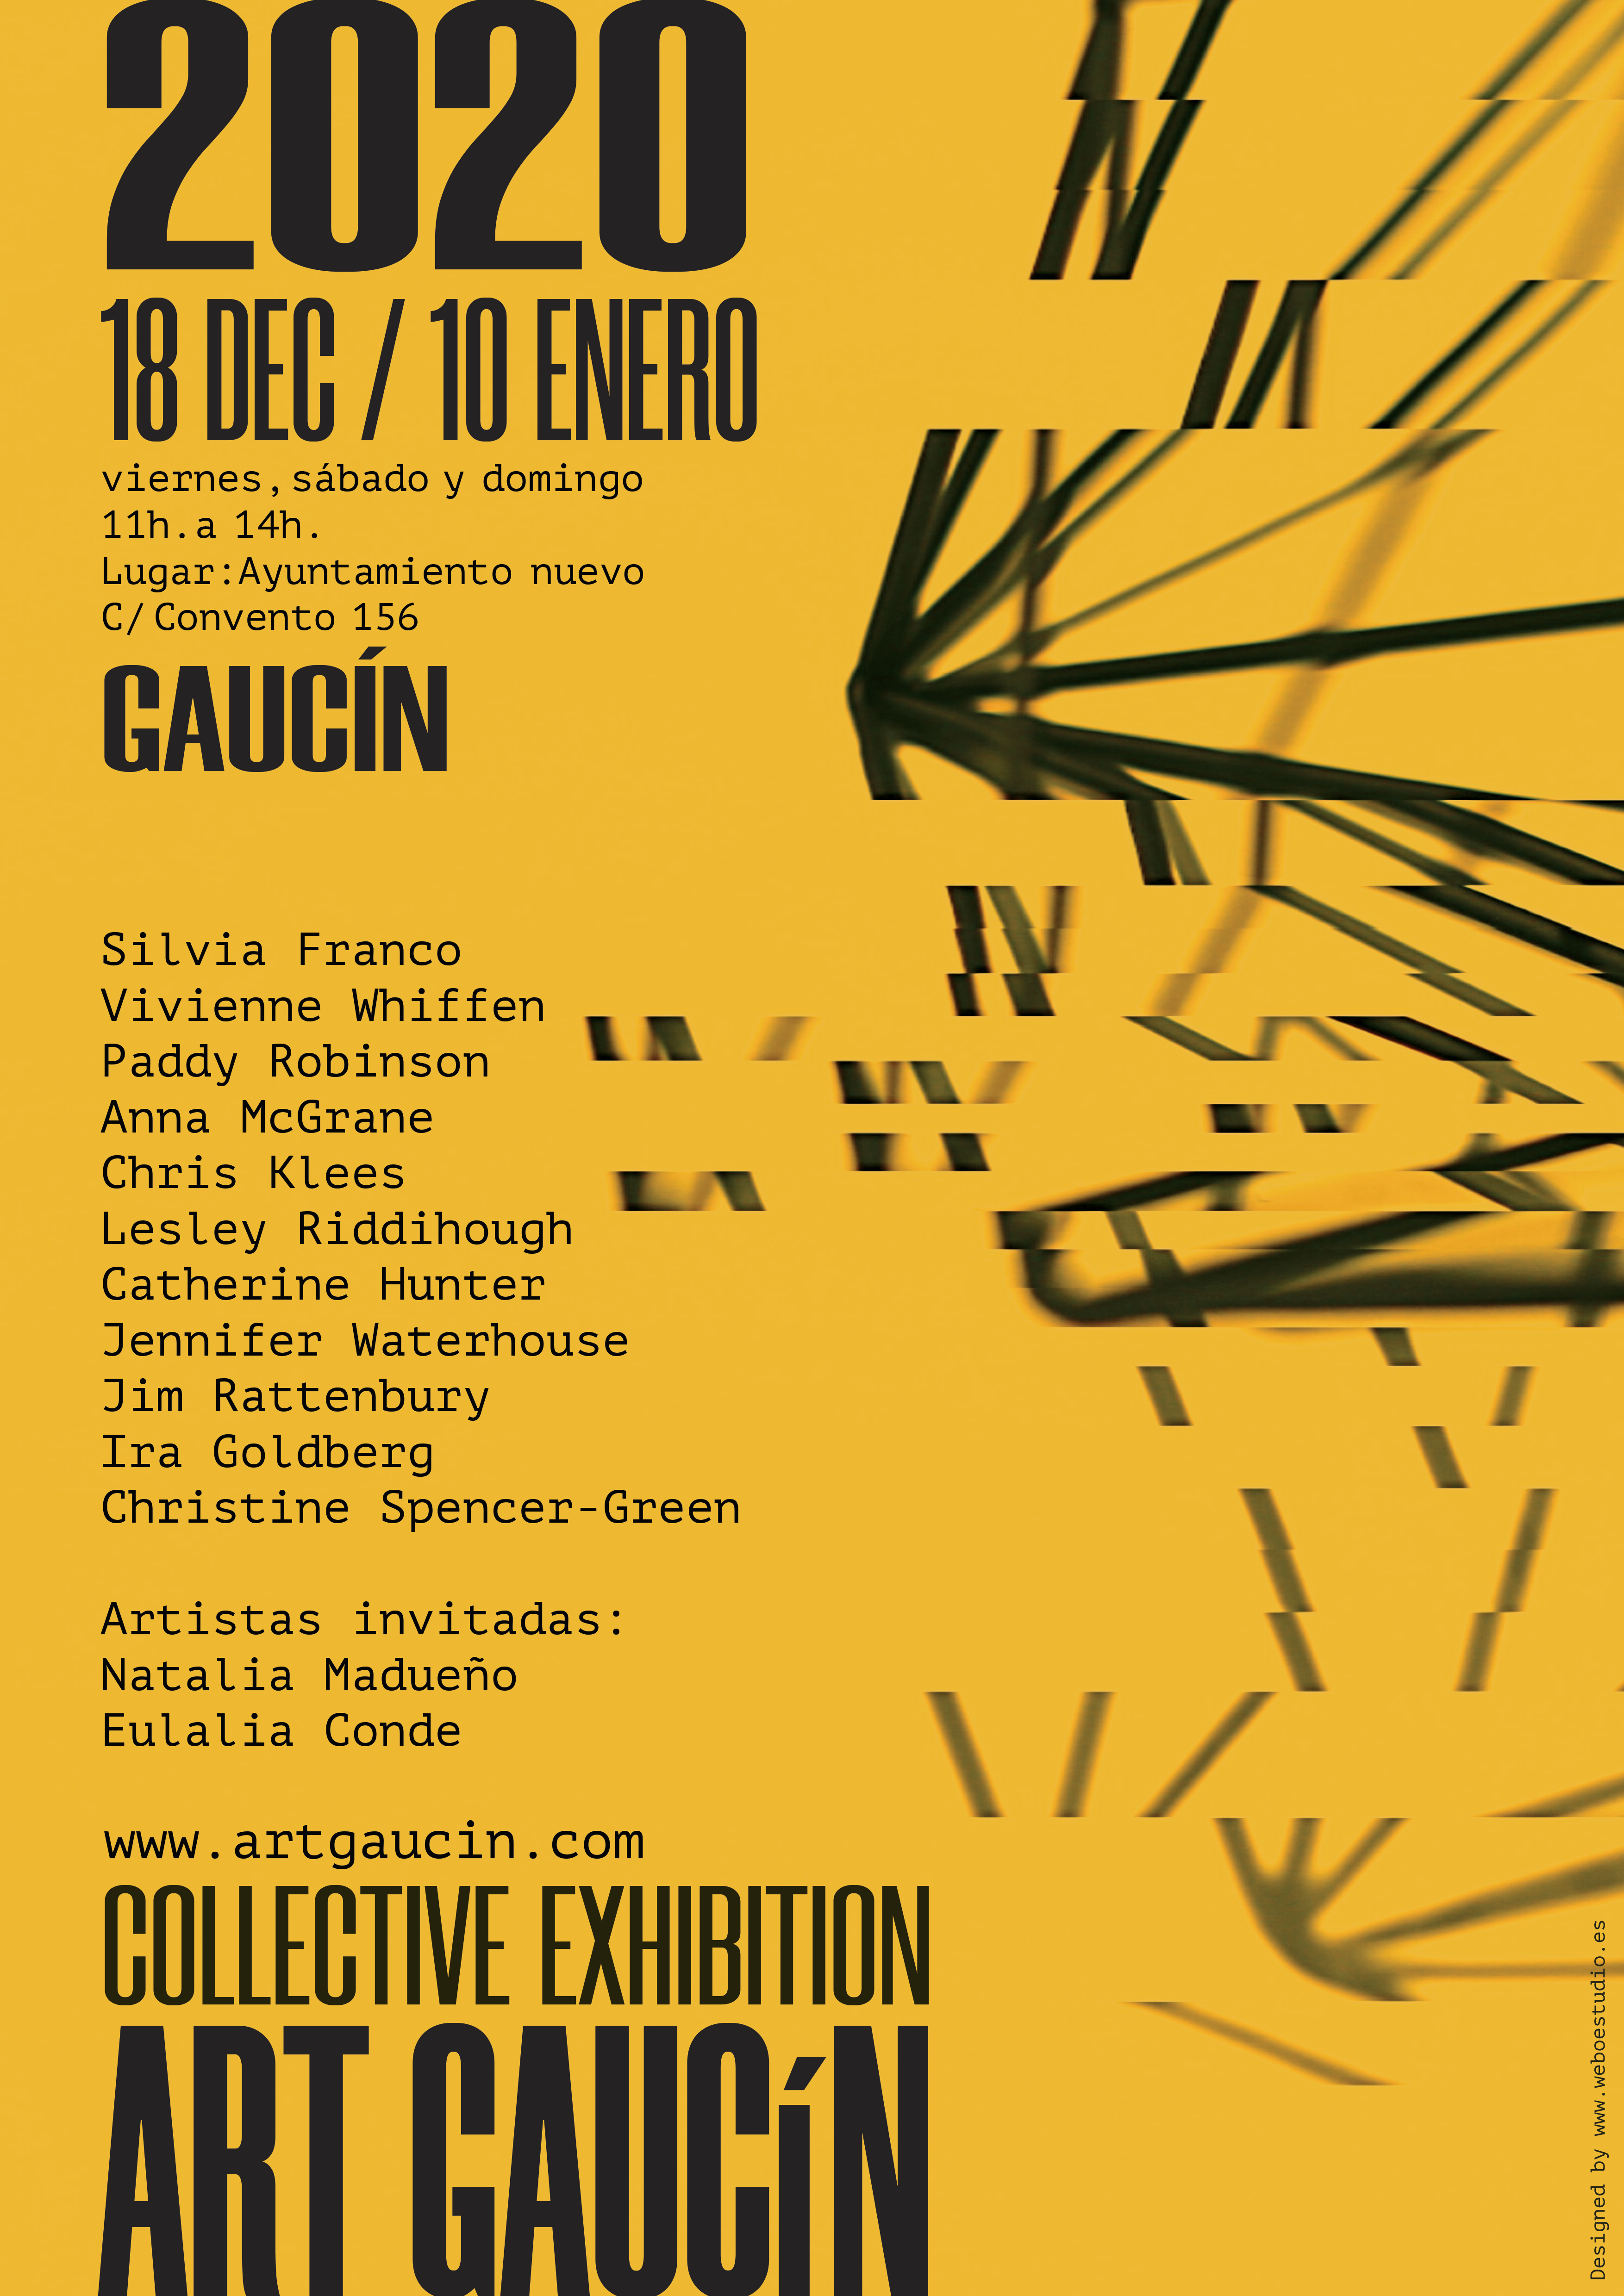 THE NEW ART GAUCÍN COLLECTIVE EXHIBITION IS OPENINIG